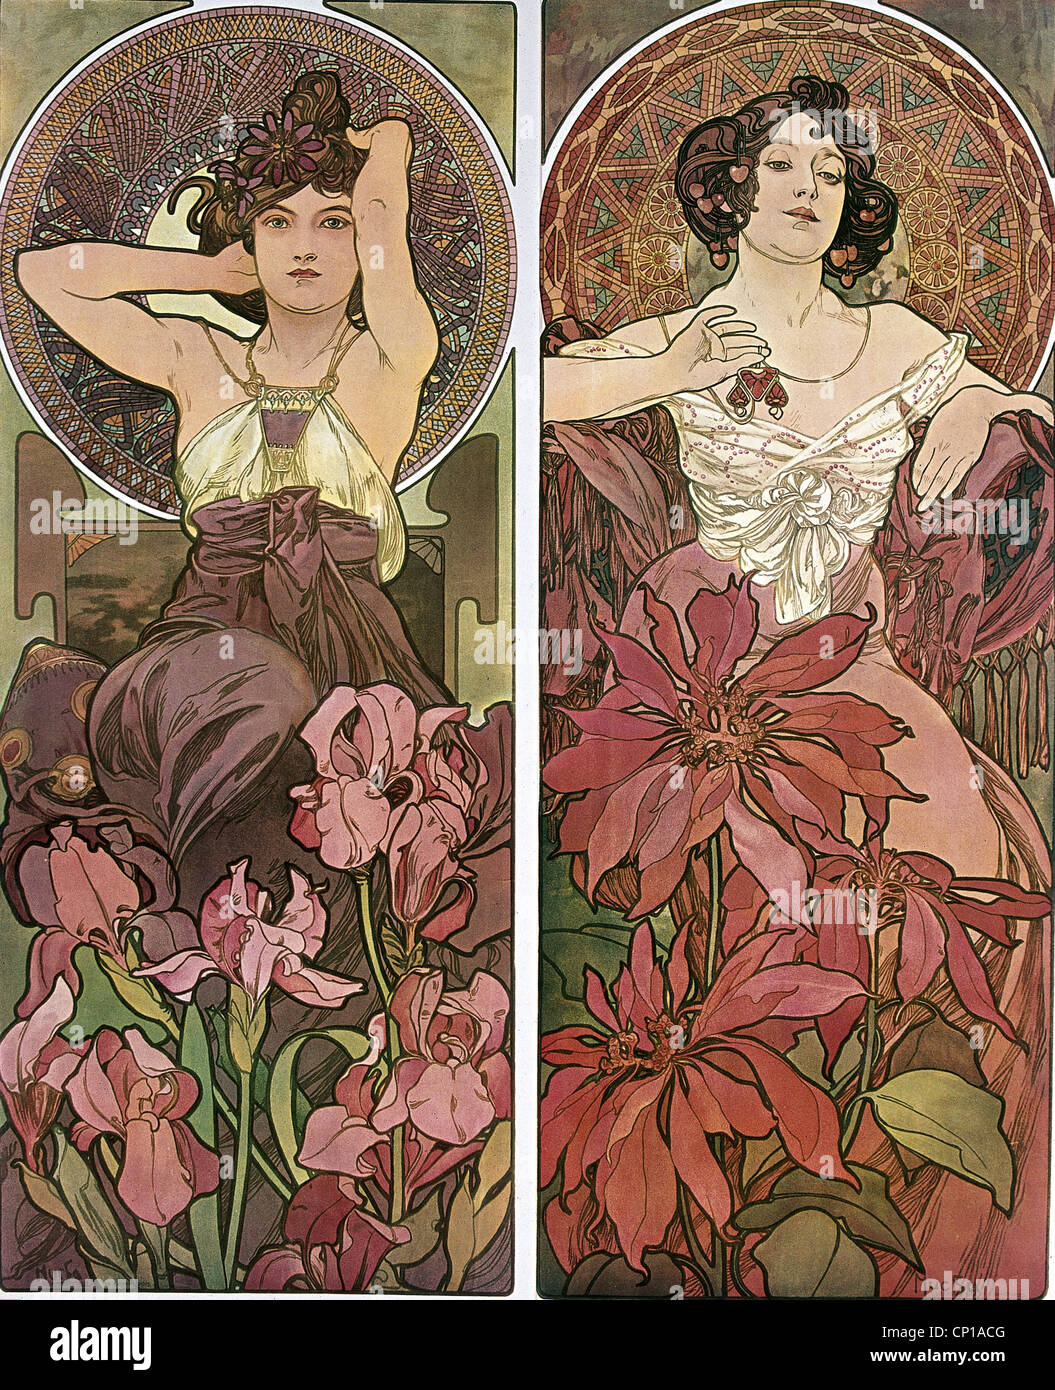 fine arts, Mucha, Alfons (1860 - 1939), poster, circa 1900, two women, sitting, flowers, hair, Art Nouveau, Alphonse, Stock Foto